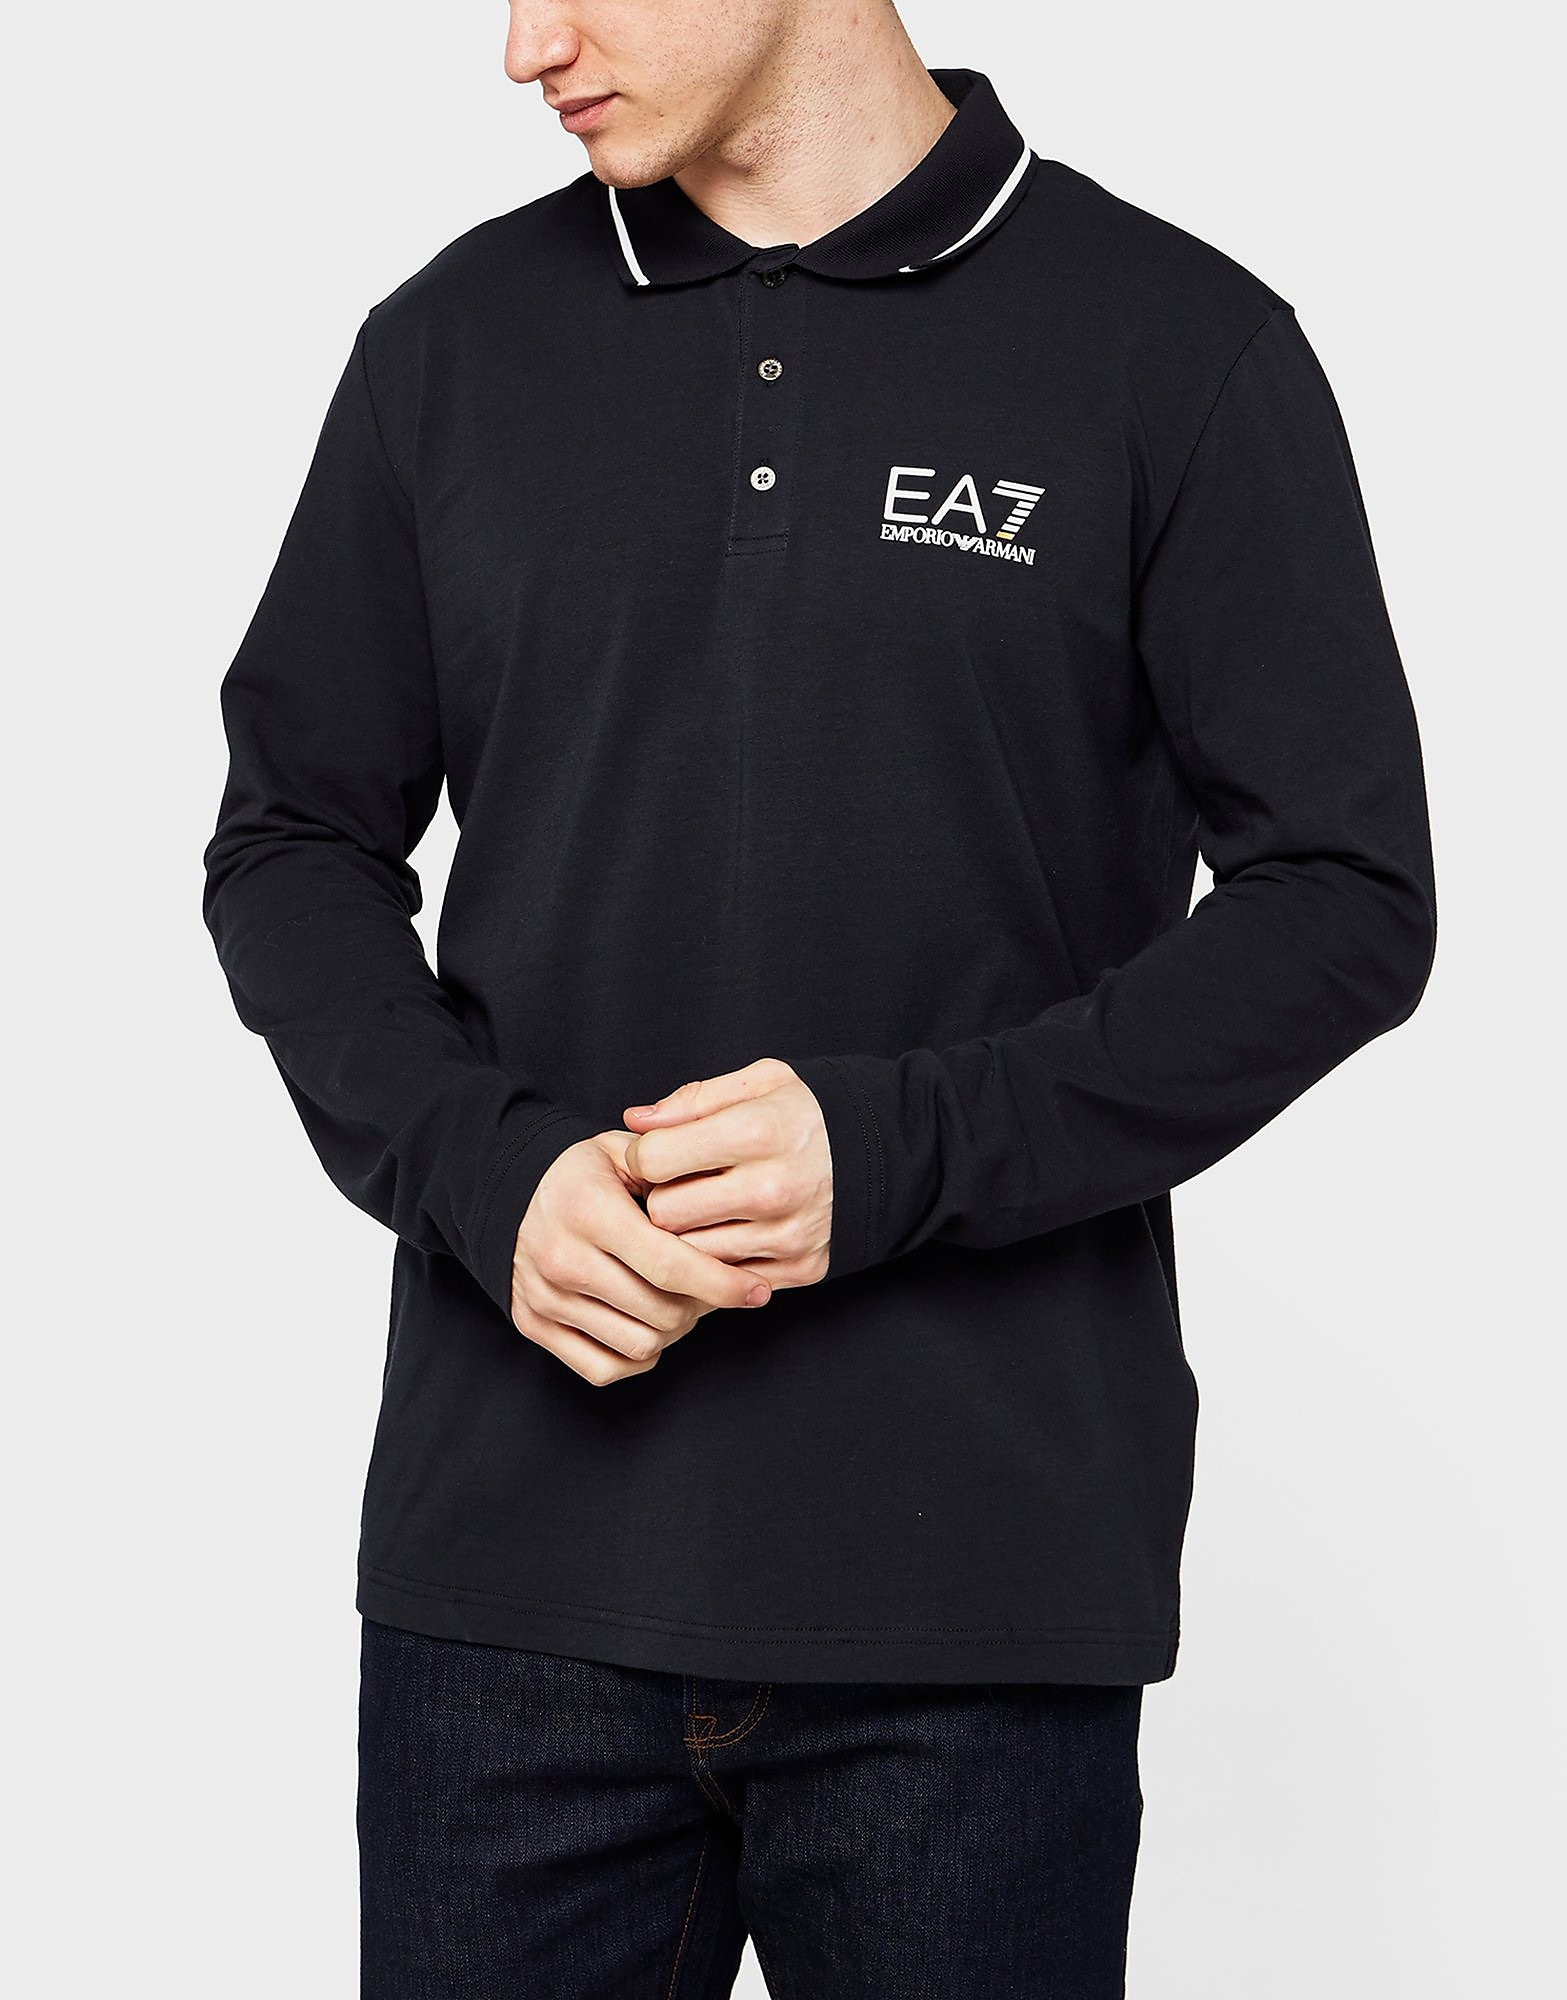 Emporio Armani EA7 Core Long Sleeve Polo Shirt